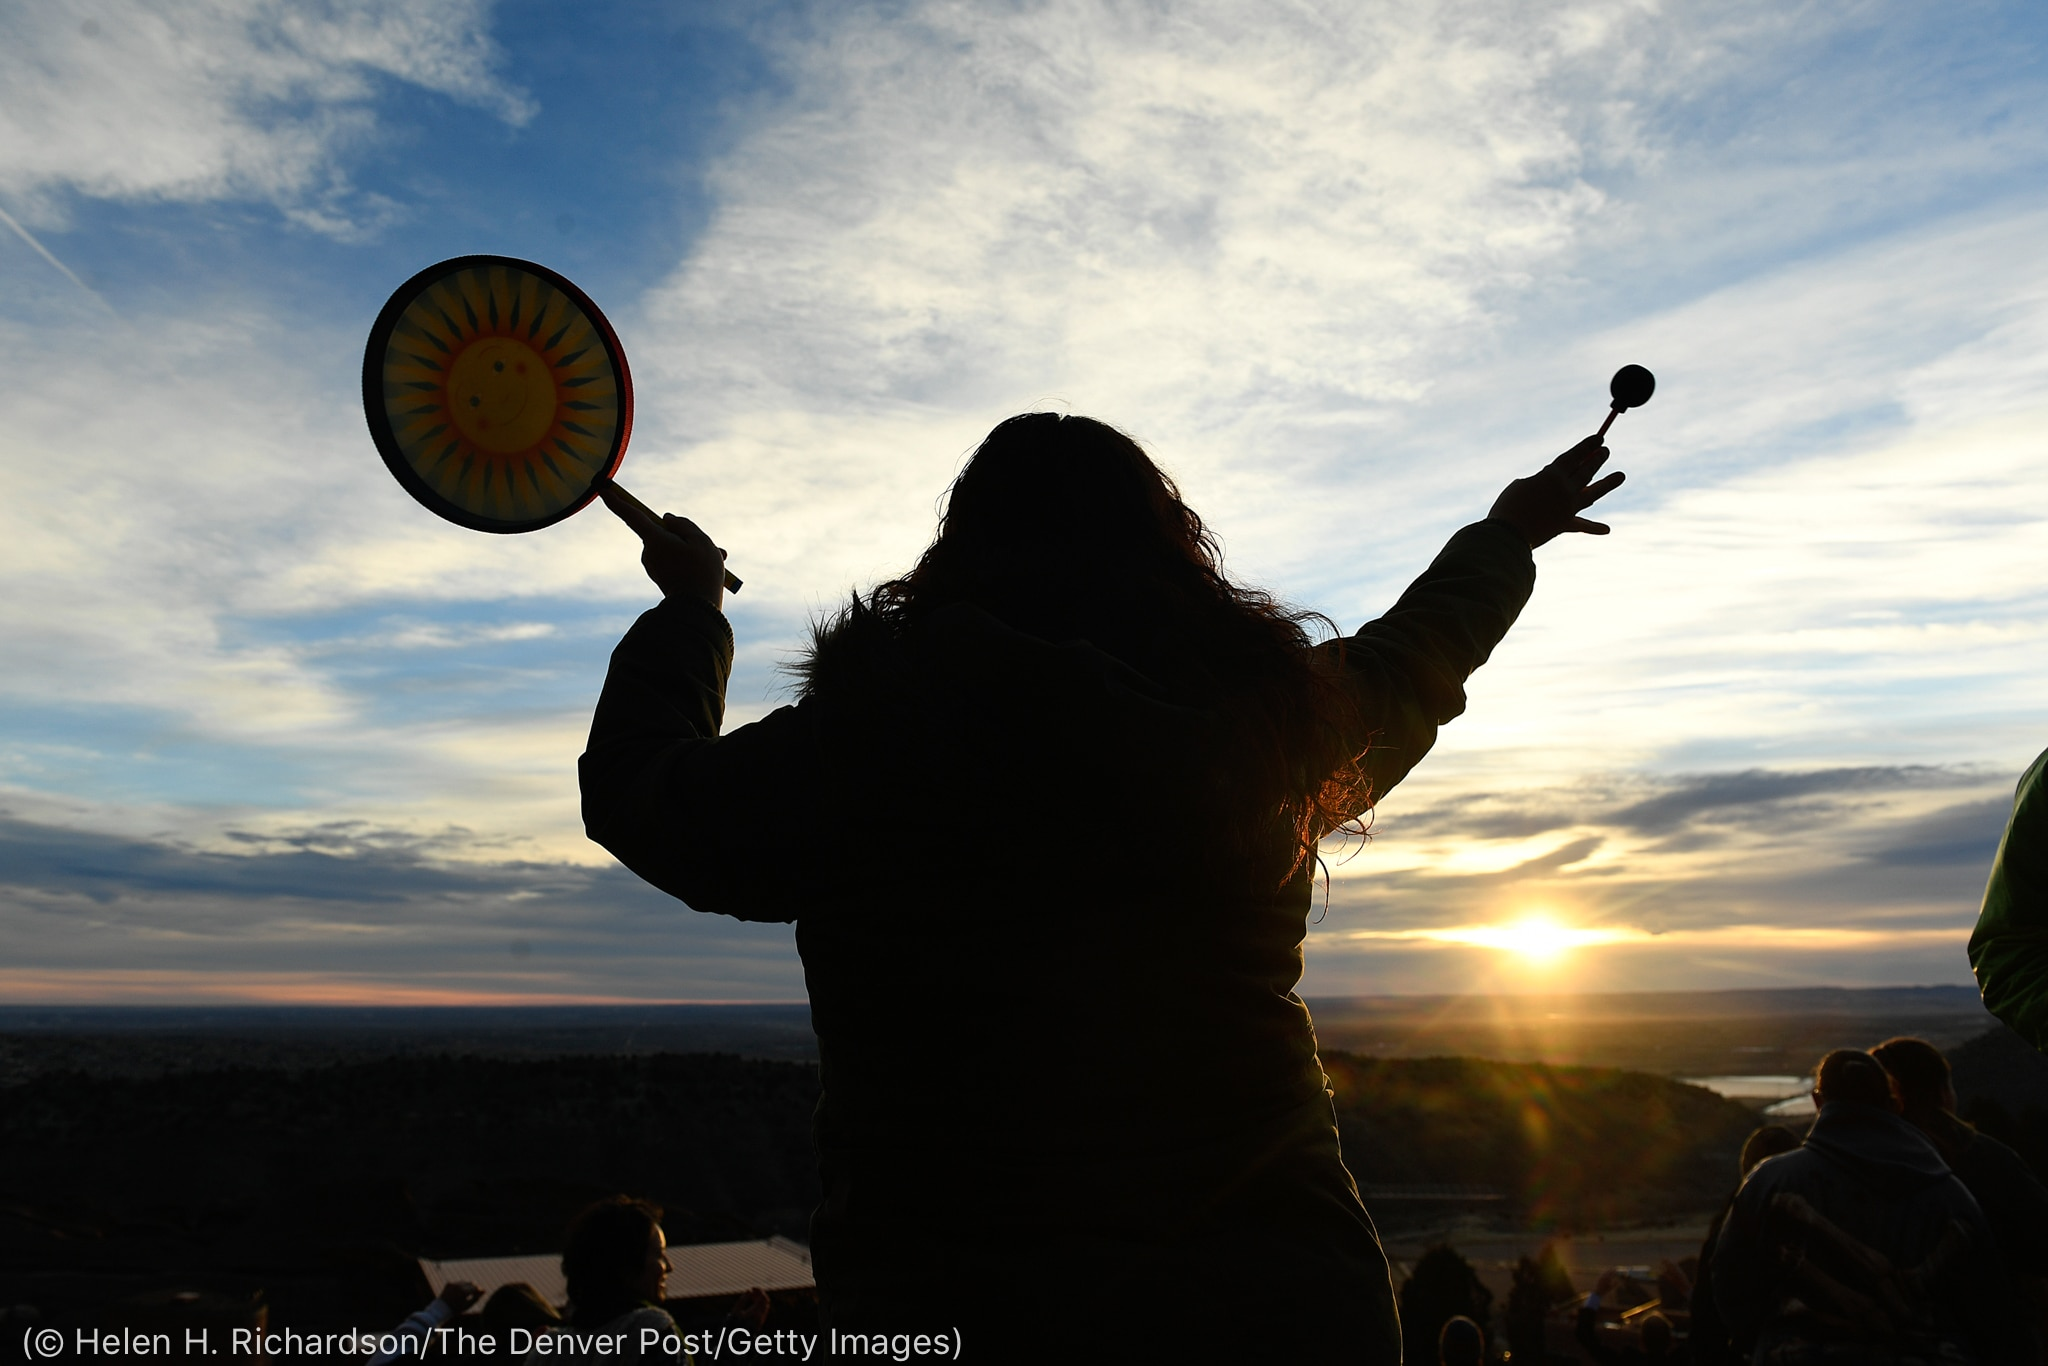 Woman playing drum with sun on horizon (© Helen H. Richardson/The Denver Post/Getty Images)